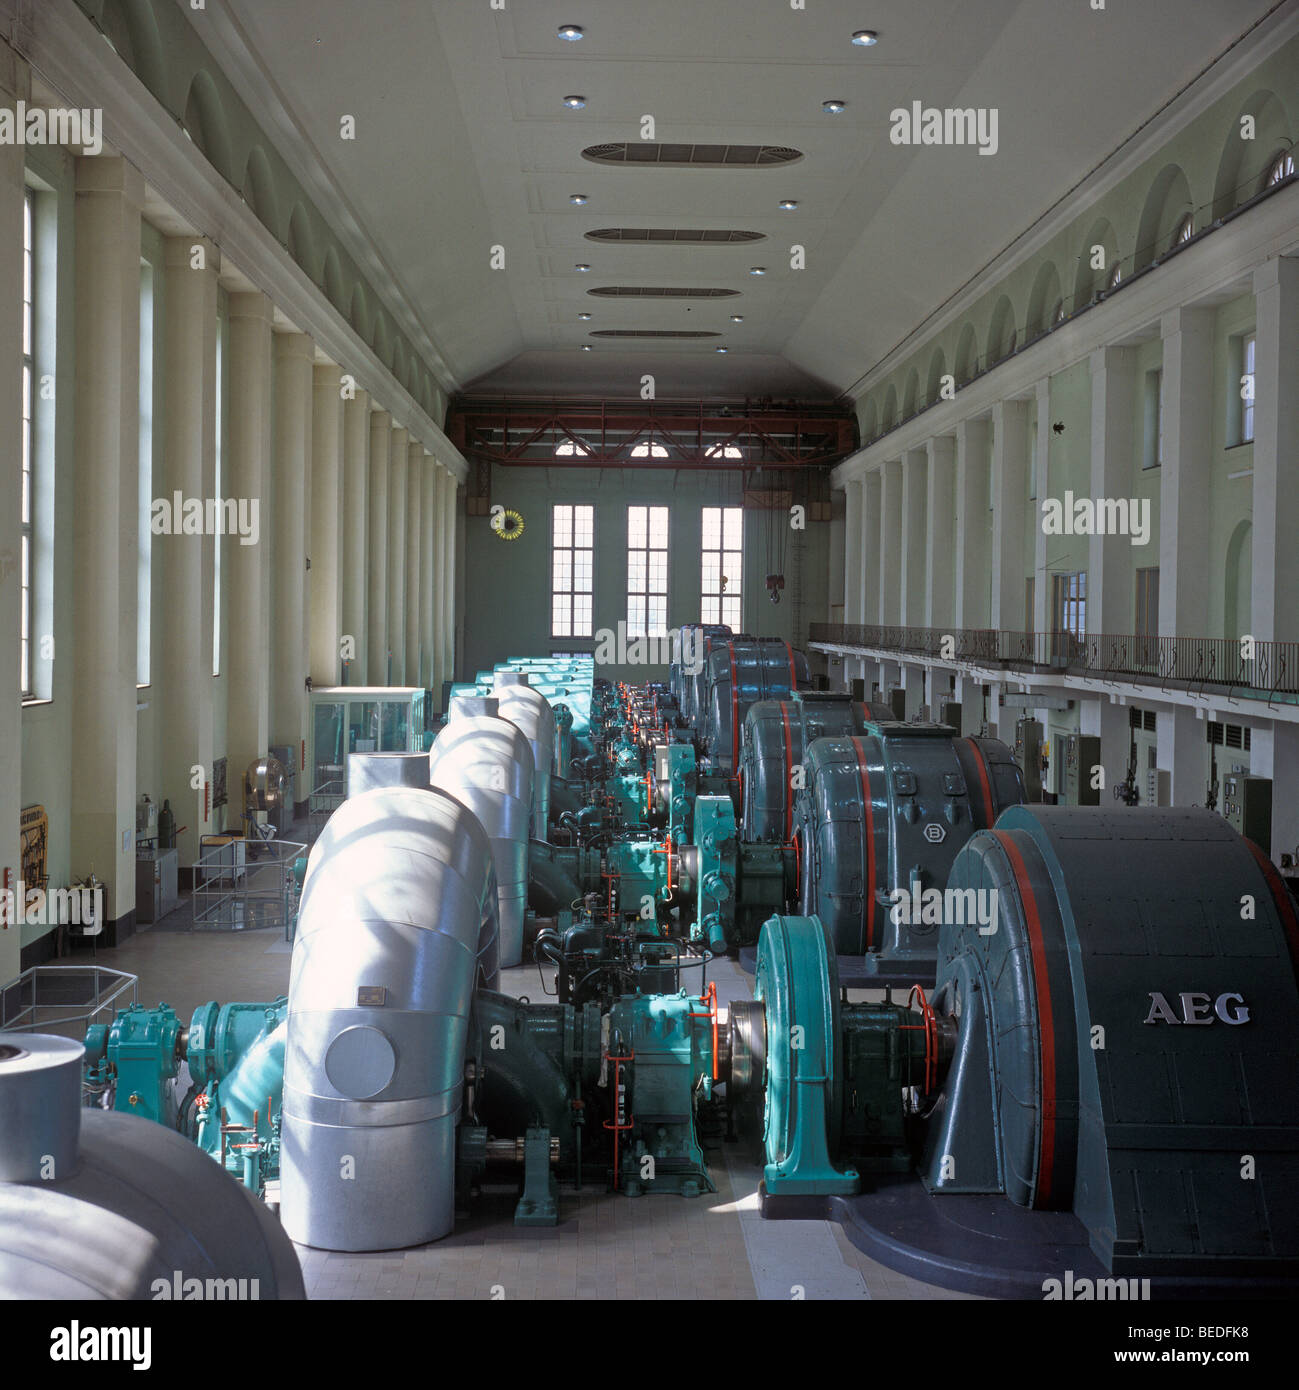 Walchensee power plant, interior with turbines, Kochel, Upper Bavaria, Germany, Europe - Stock Image